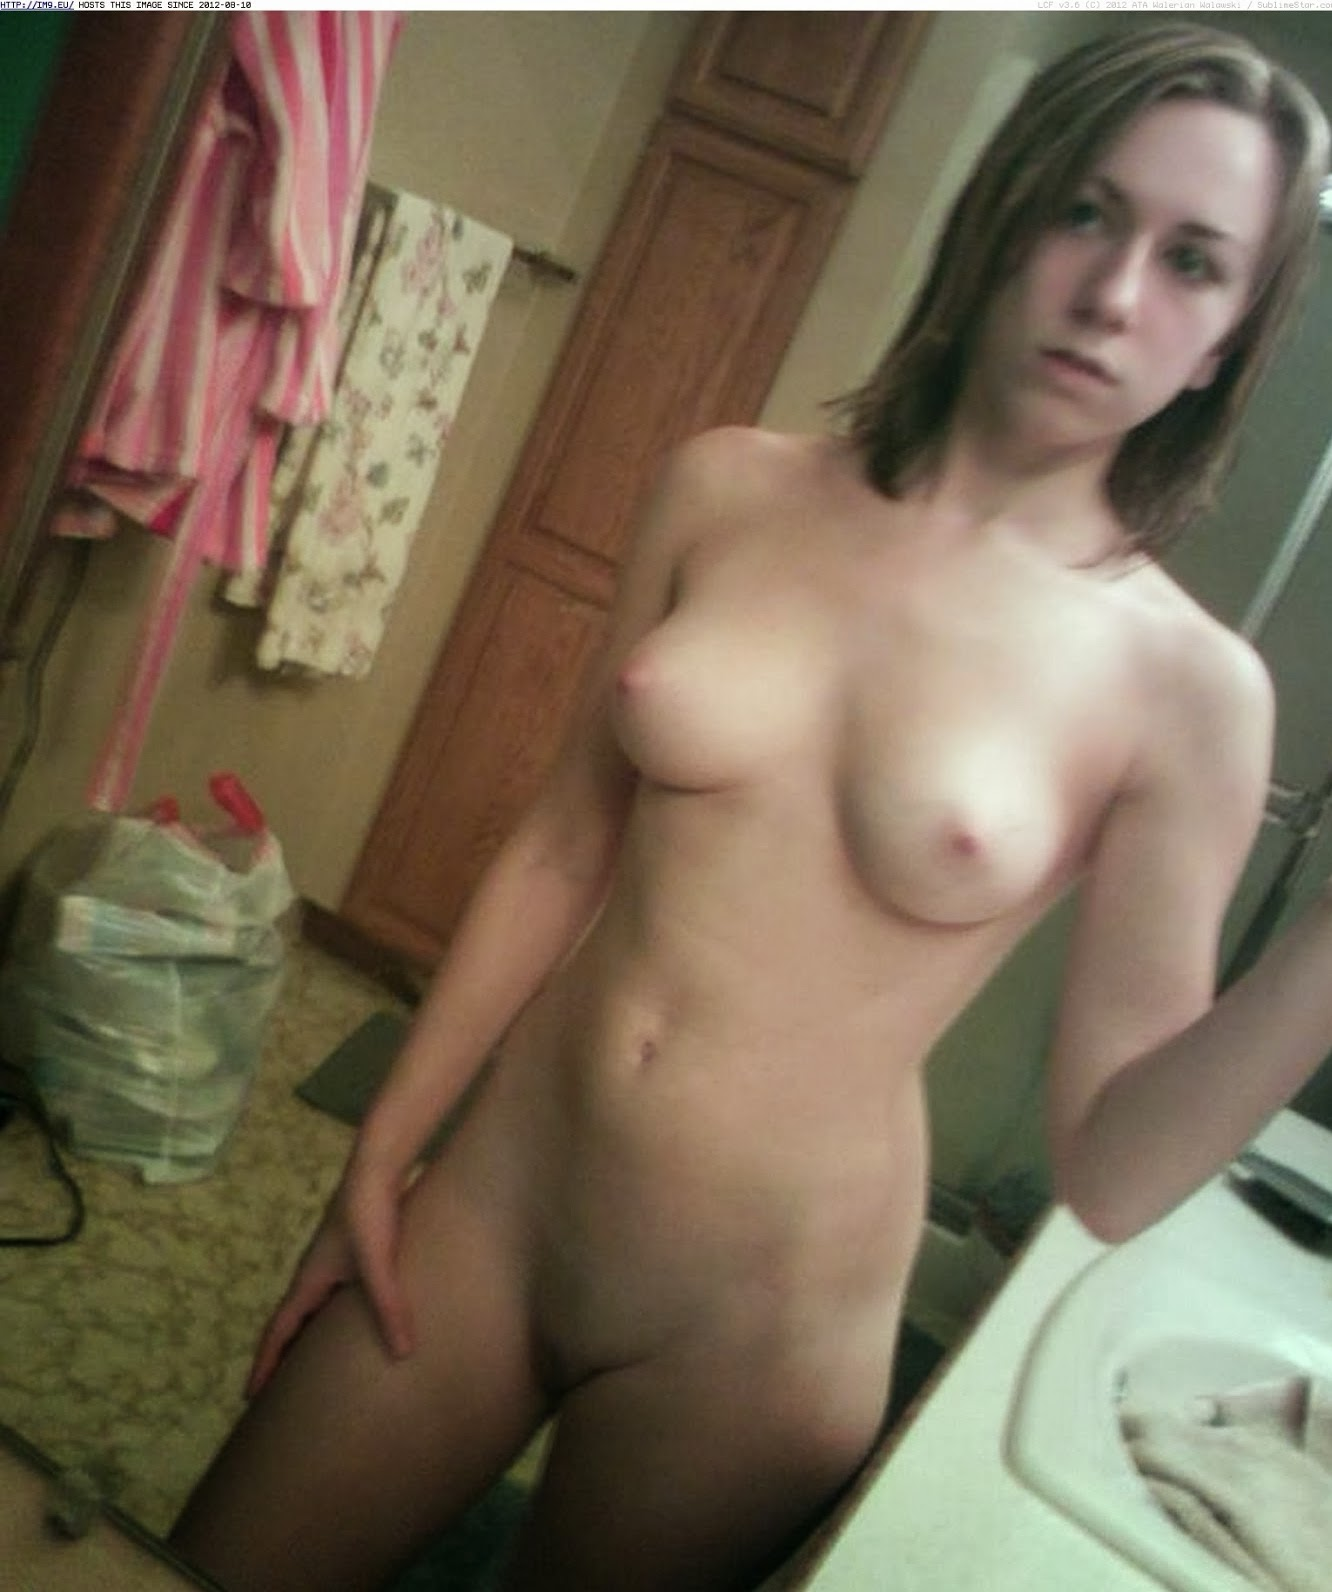 Phrase Teenage girl nude funny speak this